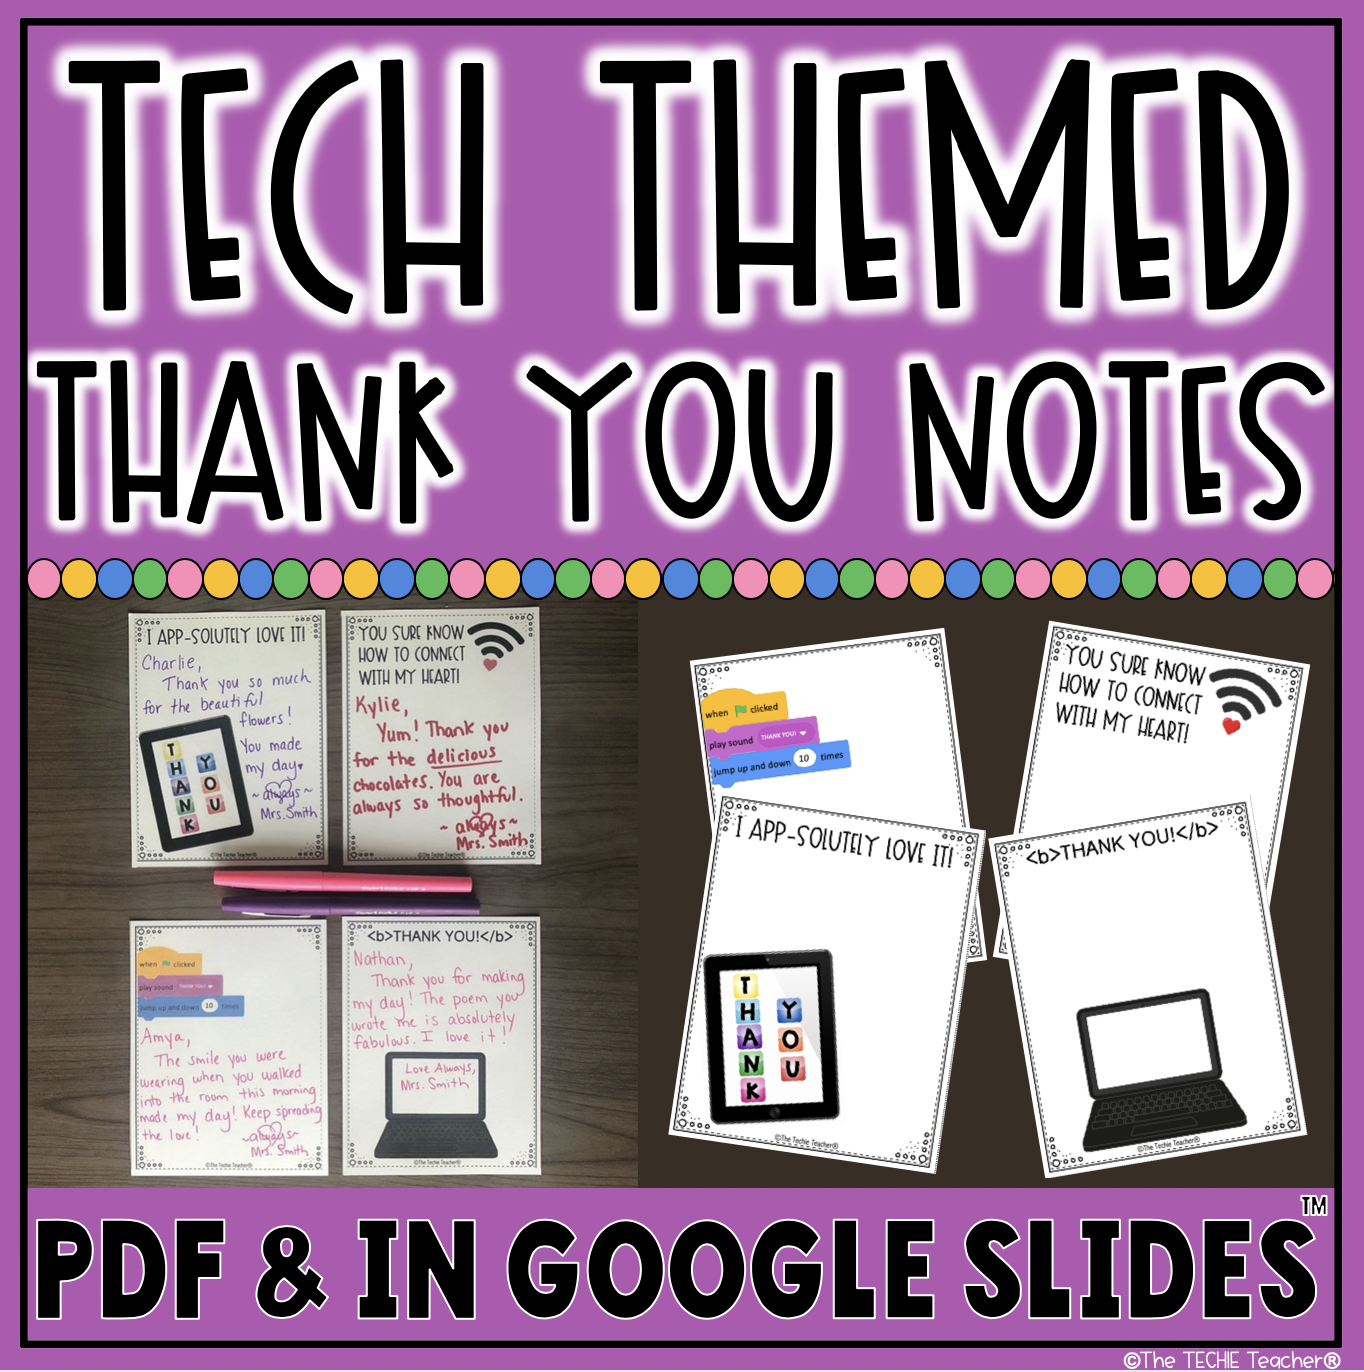 Tech themed thank you notes for those who LOVE technology! Techie nerds UNITE